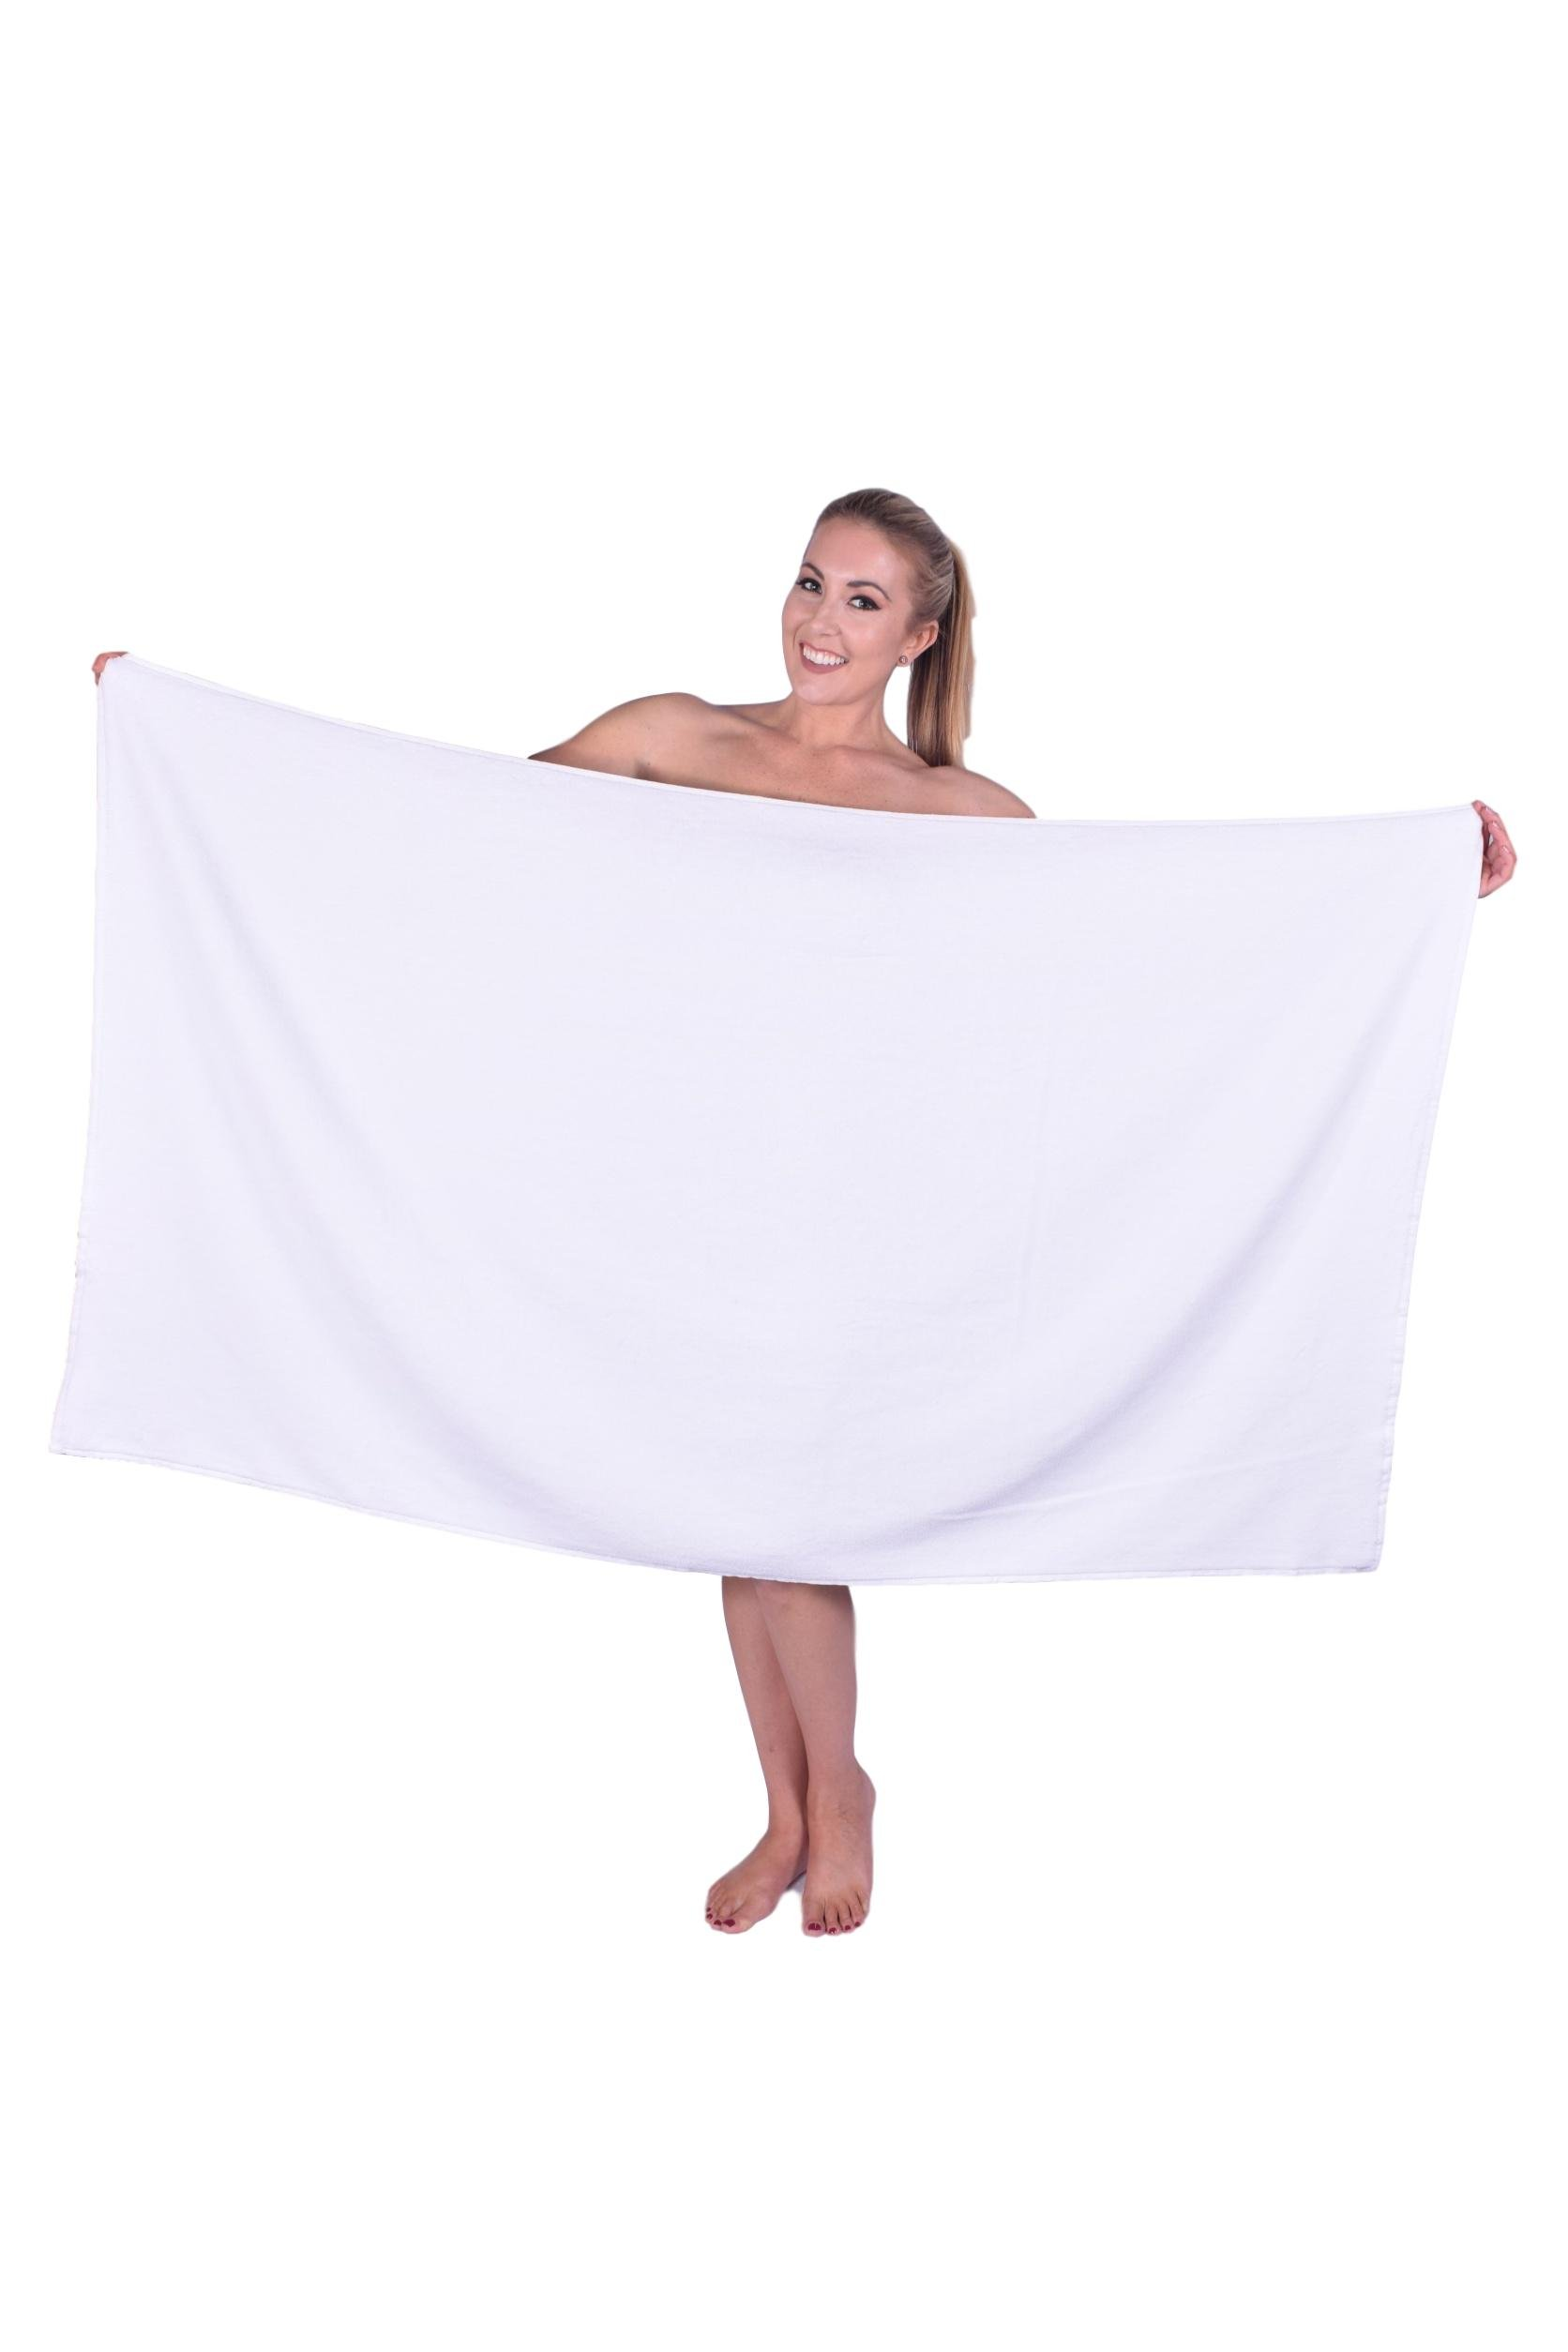 California Towel Luxury Hotel & Spa Multipurpose use Bath and Beach Towel Oversized%100 Genuine Terry Velour Turkish Cotton Oversize Company (1, White)